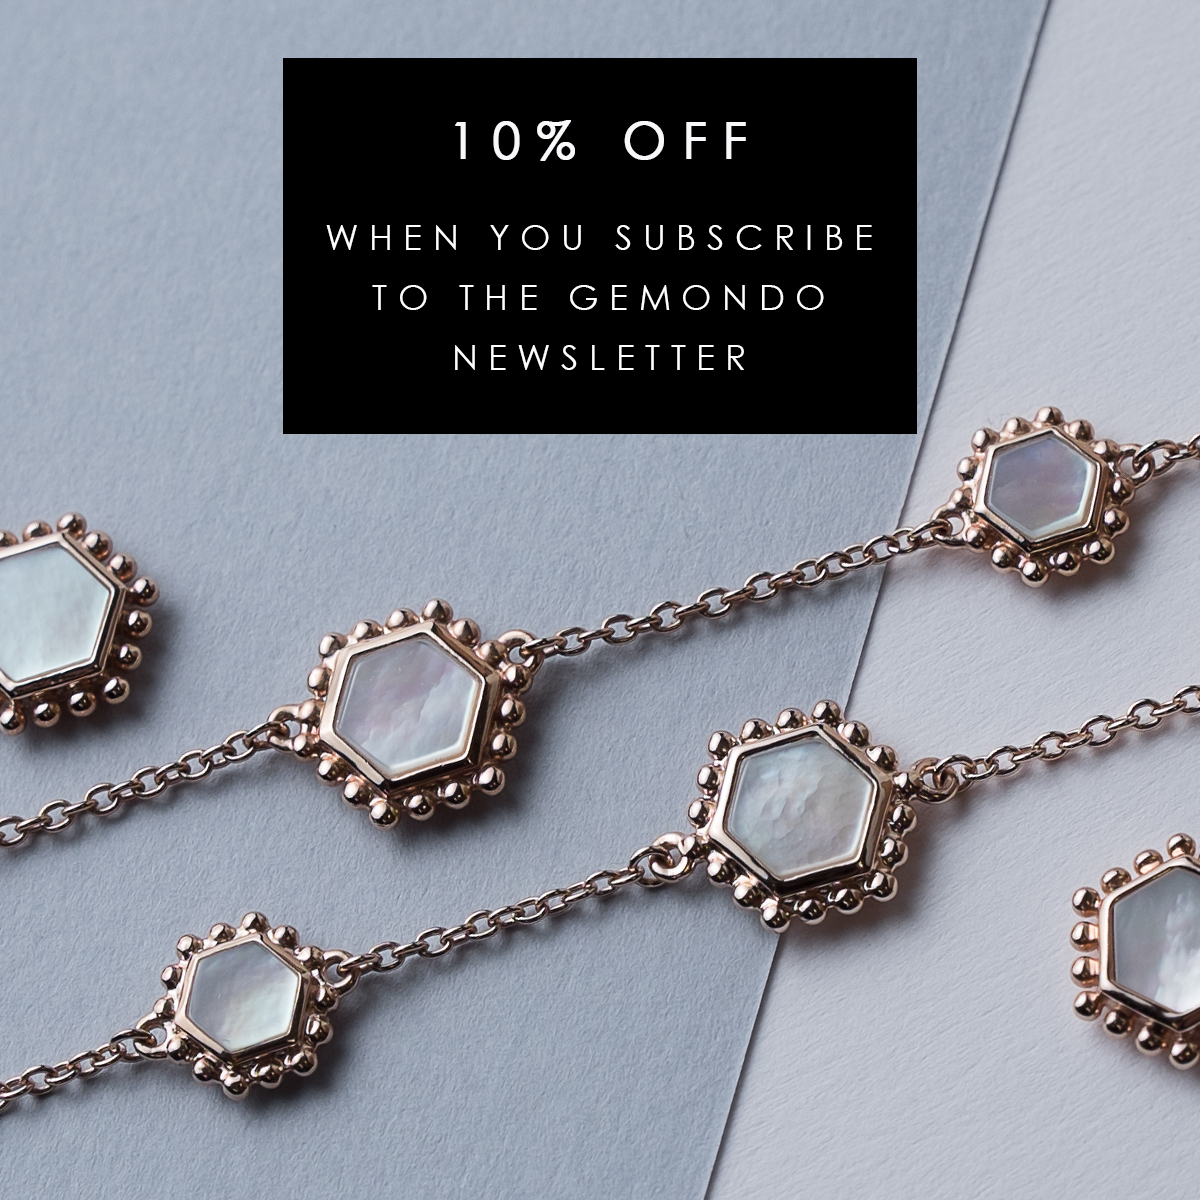 Sign up to save 10% at Gemondo jewellery